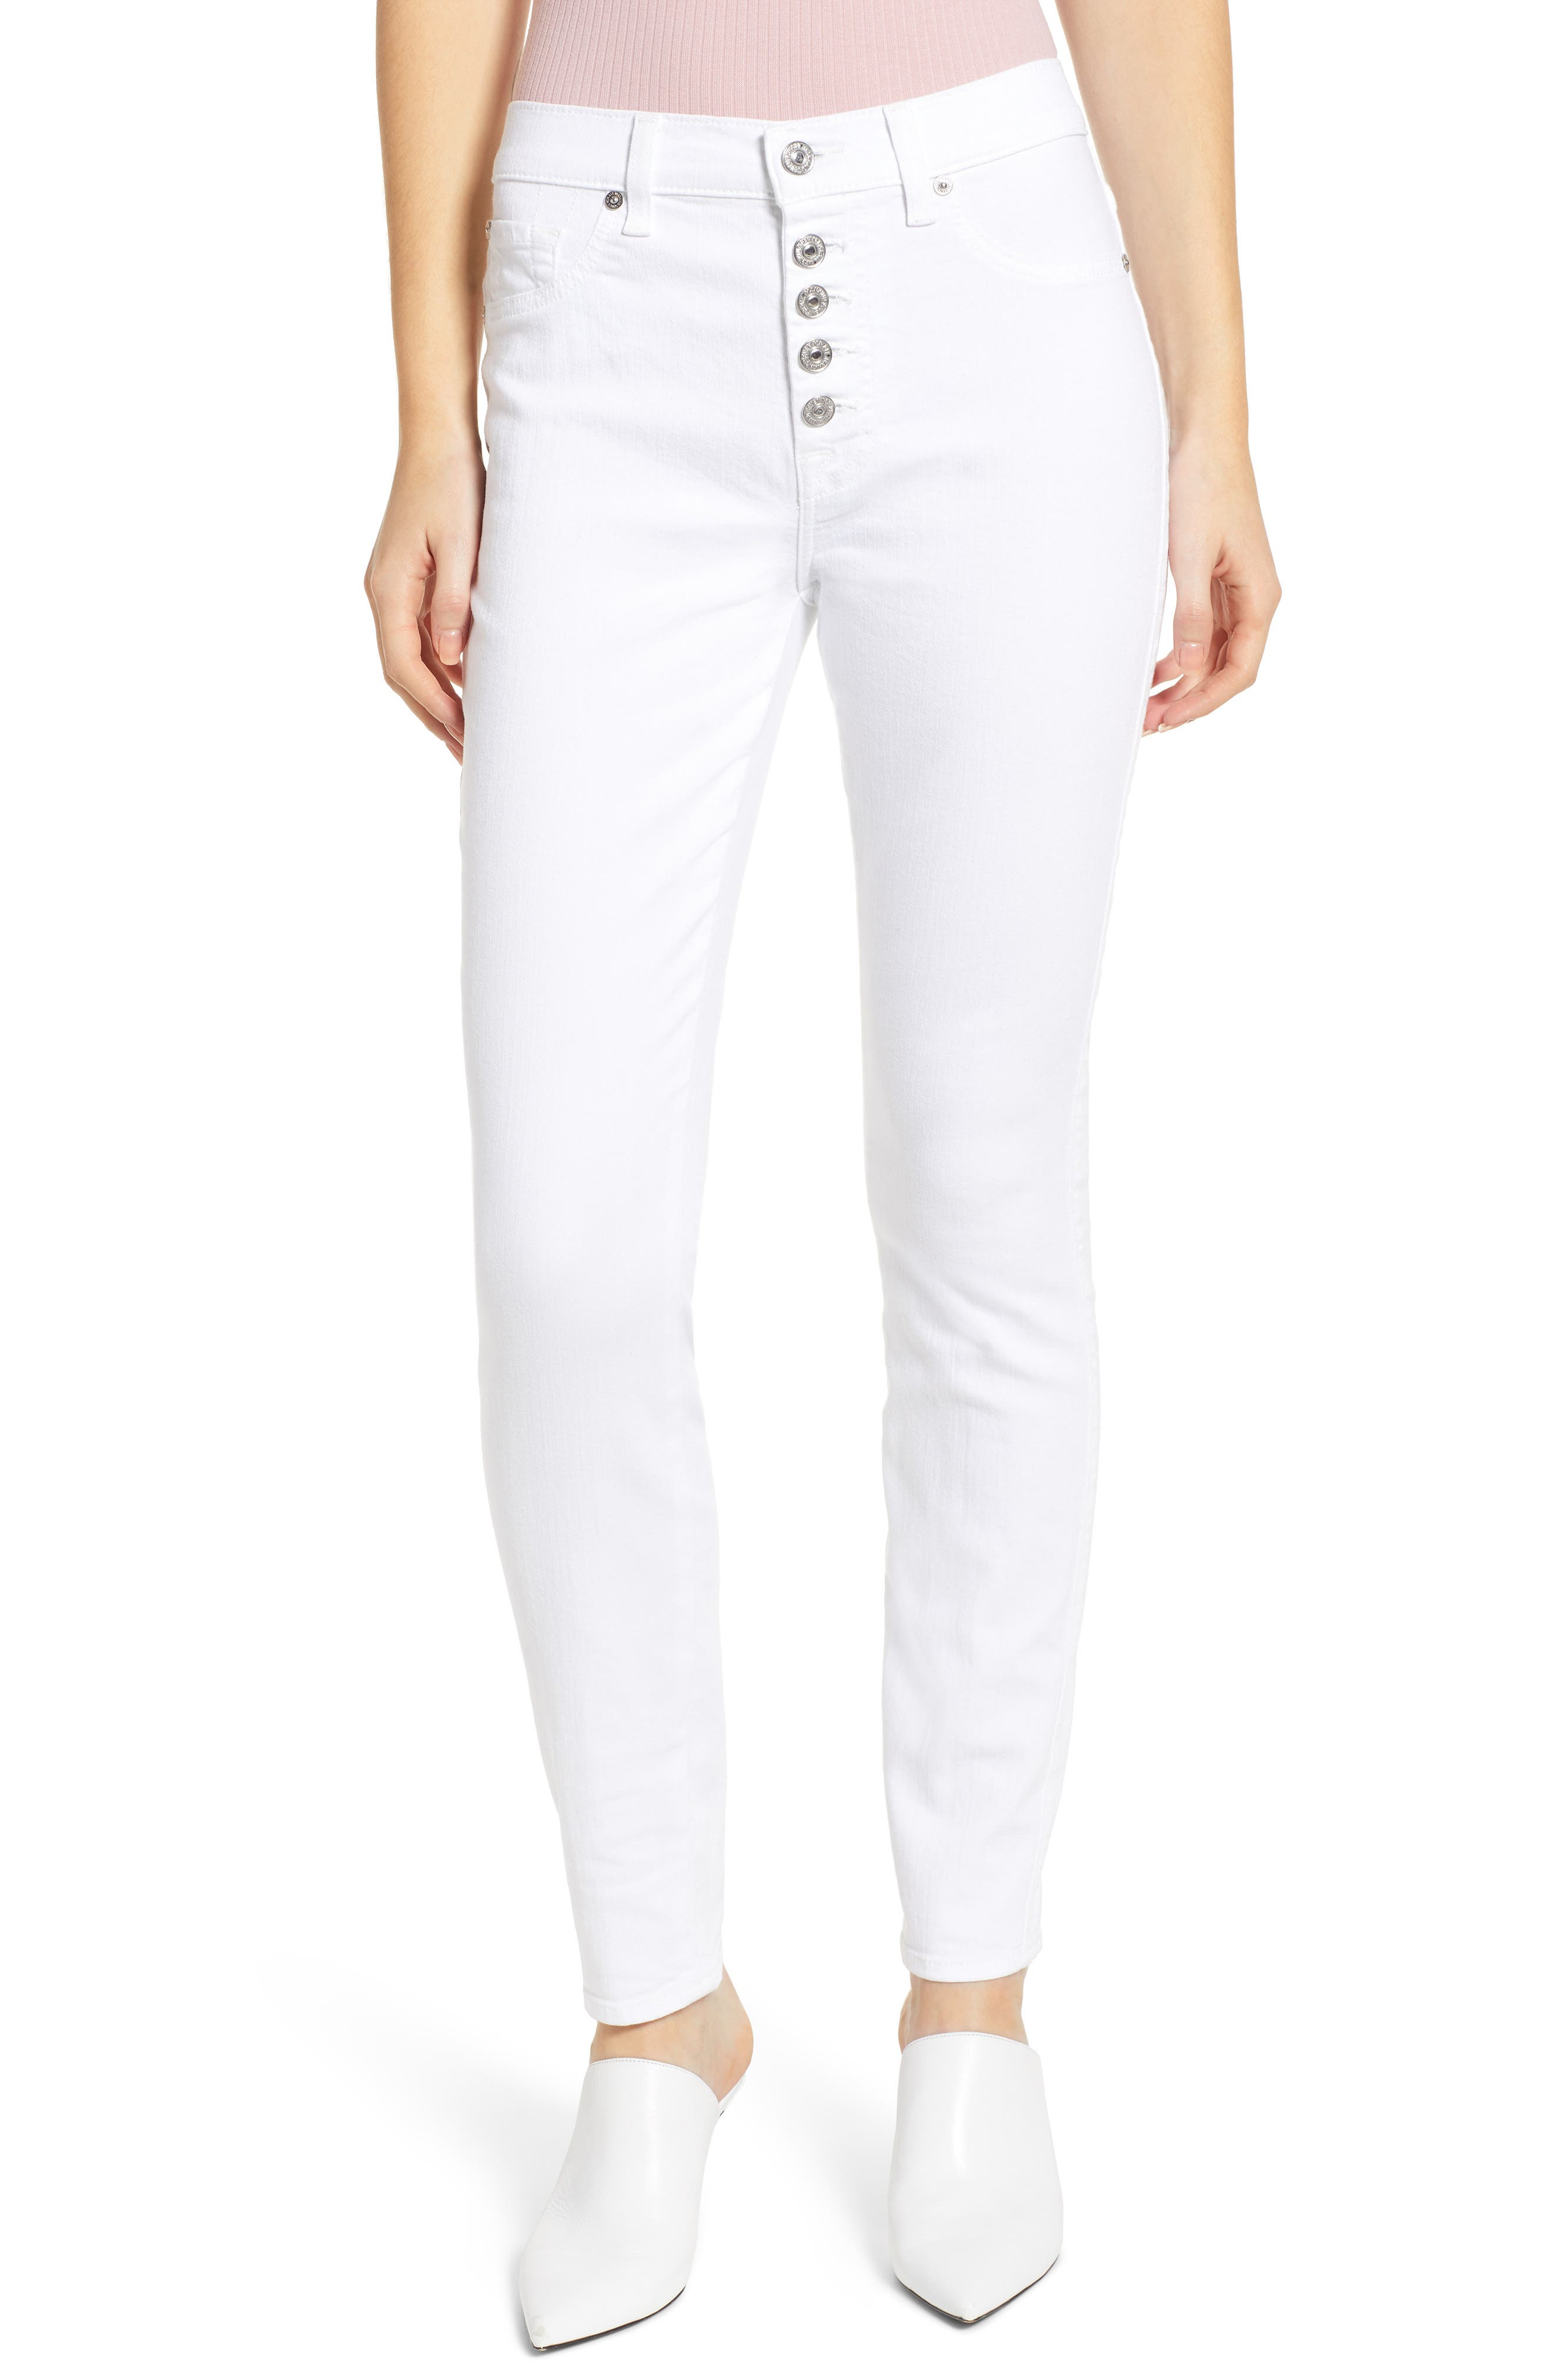 7 FOR ALL MANKIND<SUP>®</SUP>, Button Fly High Waist Ankle Skinny Jeans, Main thumbnail 1, color, WHITE RUNWAY DENIM